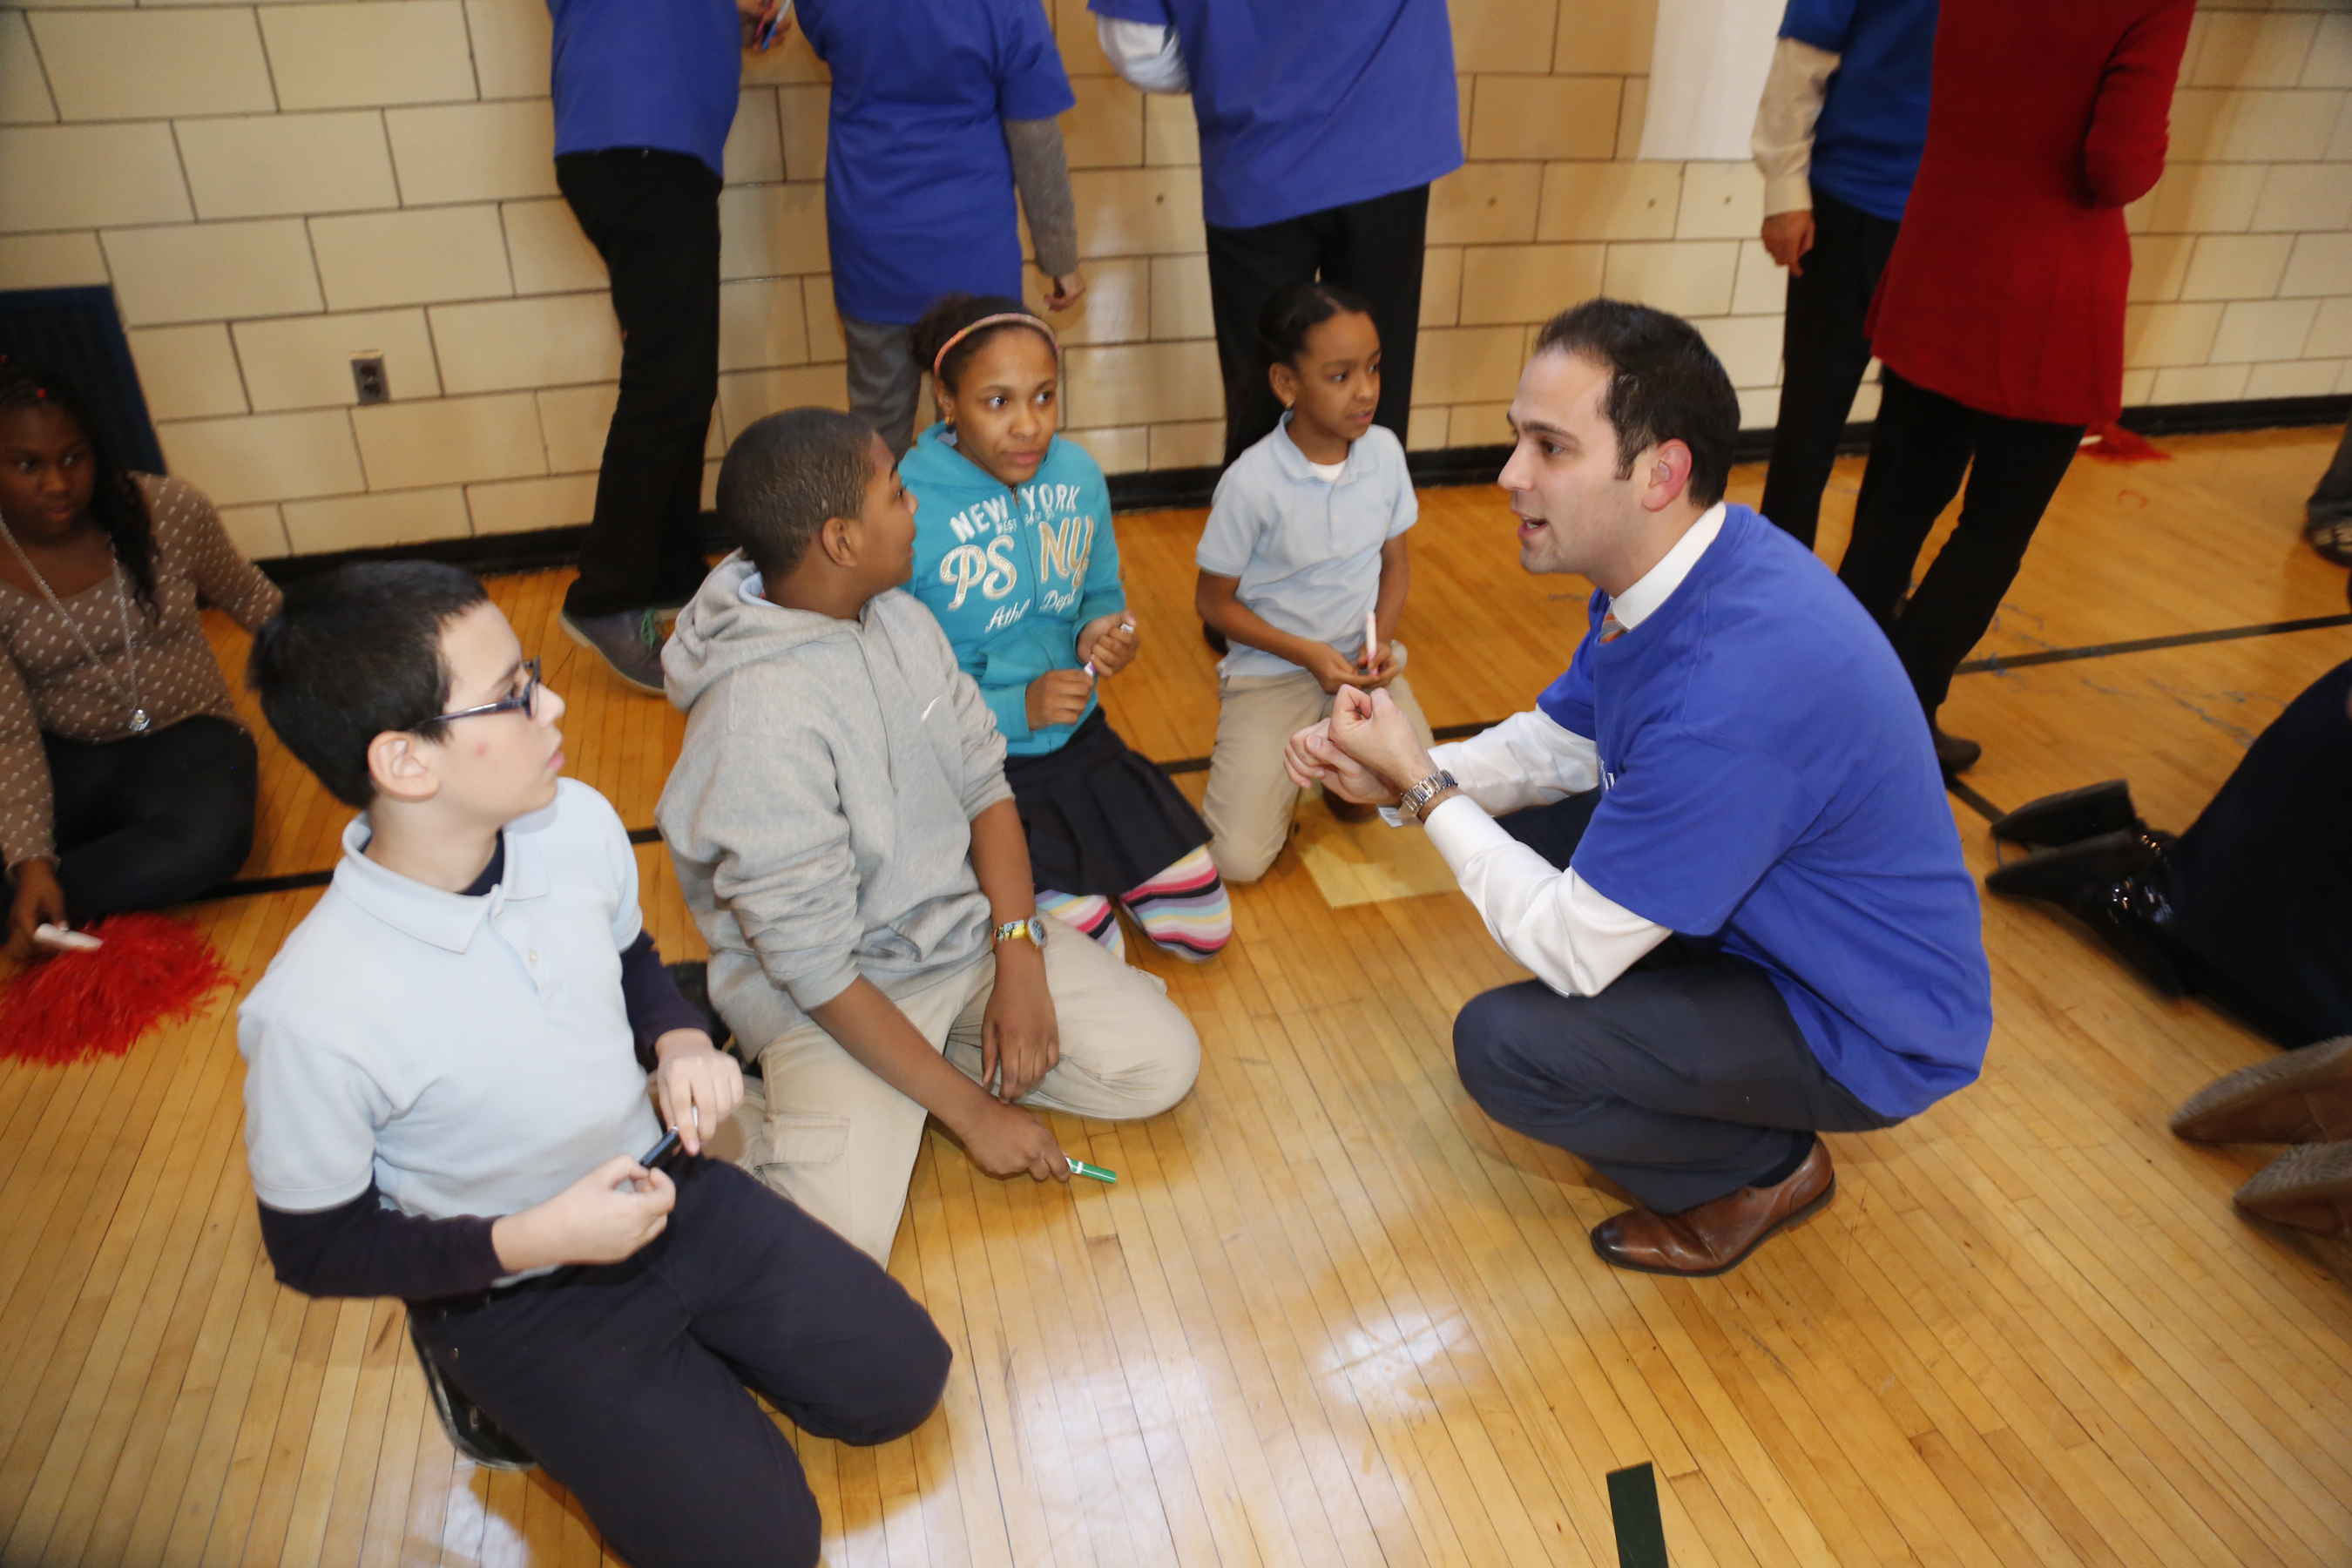 UnitedHealthcare's Victor Destefano meets with students from PS 15 as they prepare for a health trivia/physical fitness relay. The race was part of an event to kick off the second year of a collaboration between UnitedHealthcare and New York Giants Hakeem Nicks' nonprofit, Helping Hands. The organization provides backpacks of healthy foods and snacks for in-need children to take home over the weekends, when they may not otherwise have access to nutritious meals, through organizations like Blessings in a Backpack, which also joined in the afternoon's activities (Photo: Joe Rosen/PhotoBureau Inc.).